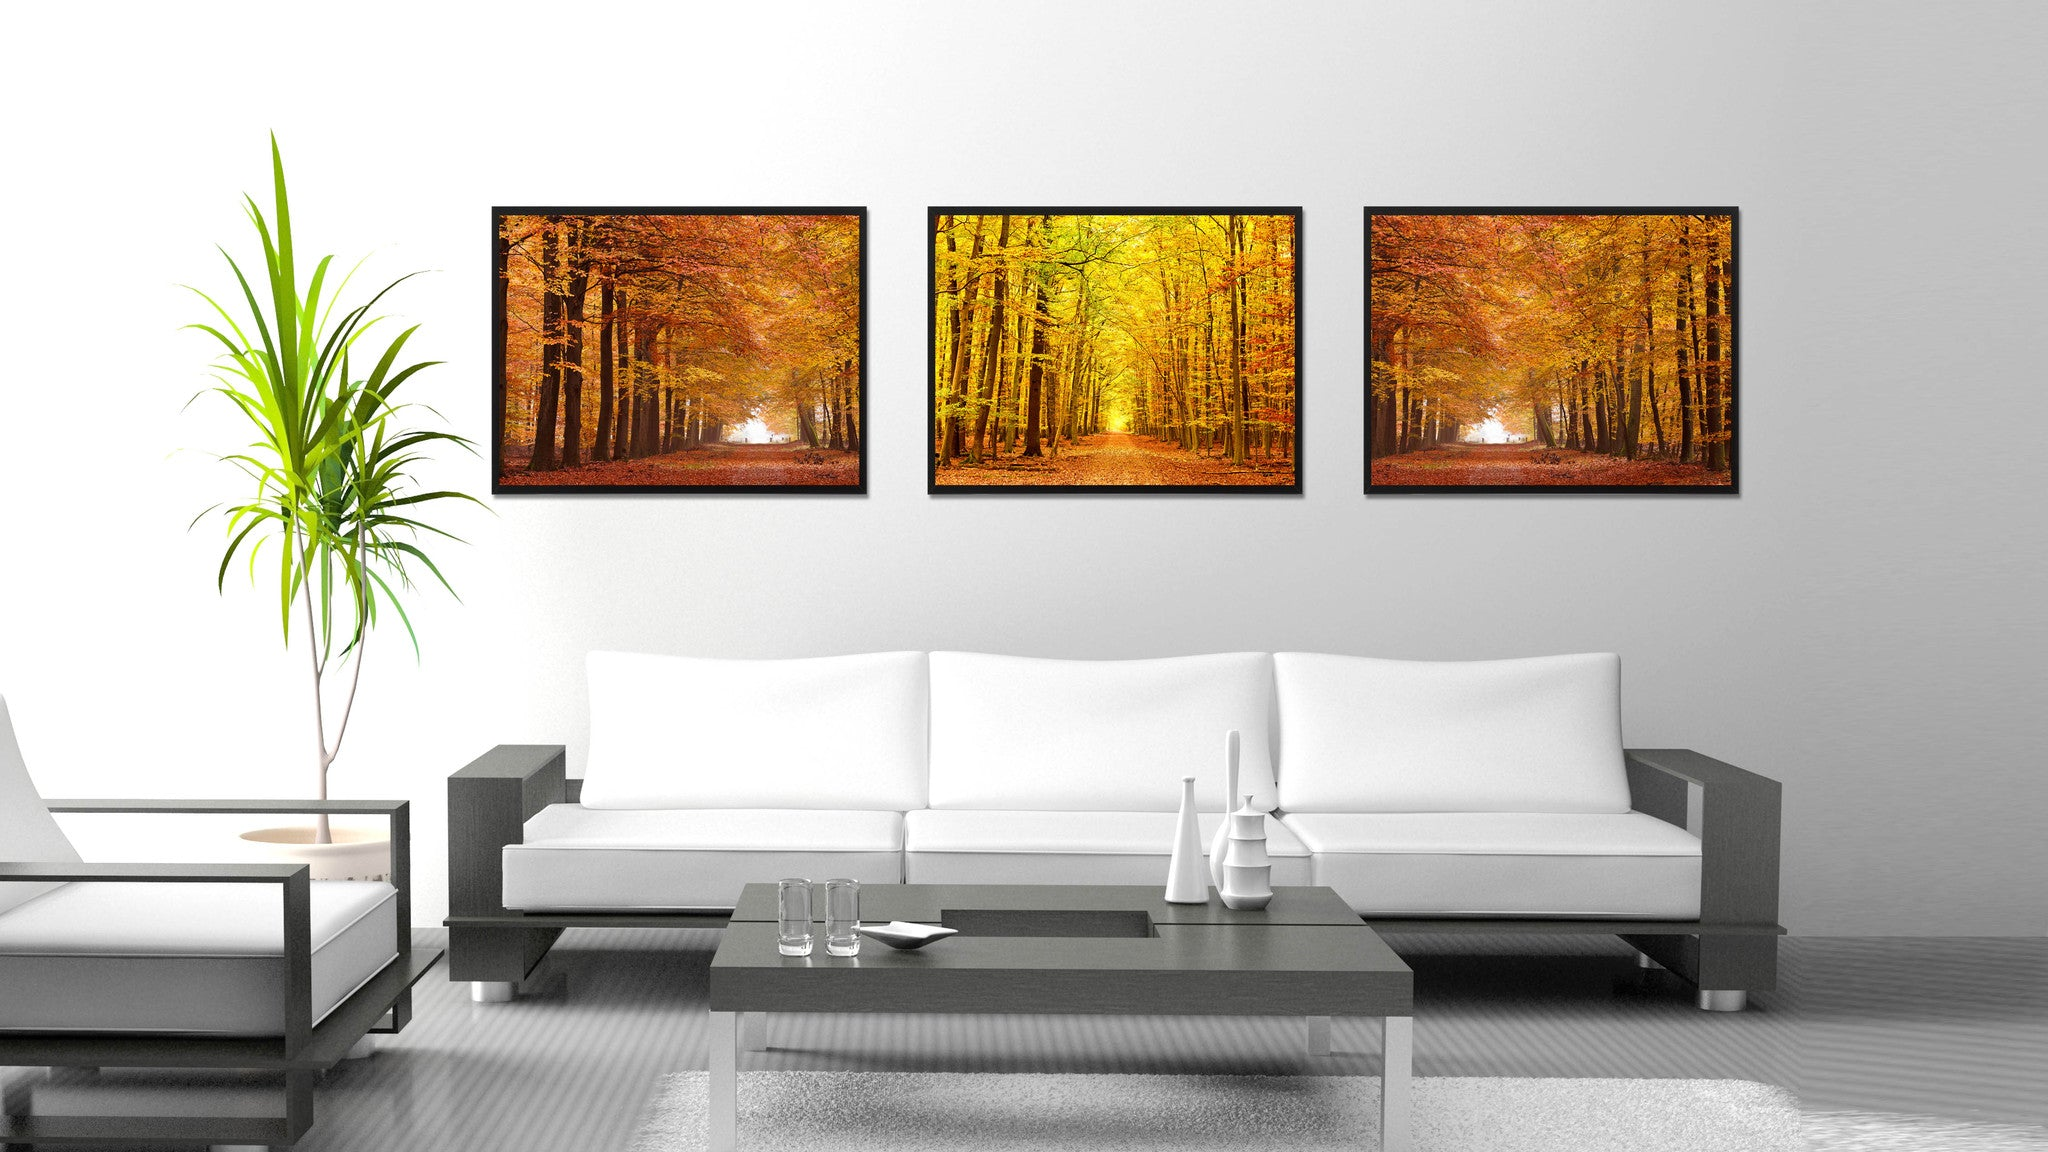 Autumn Road Yellow Landscape Photo Canvas Print Pictures Frames Home Décor Wall Art Gifts